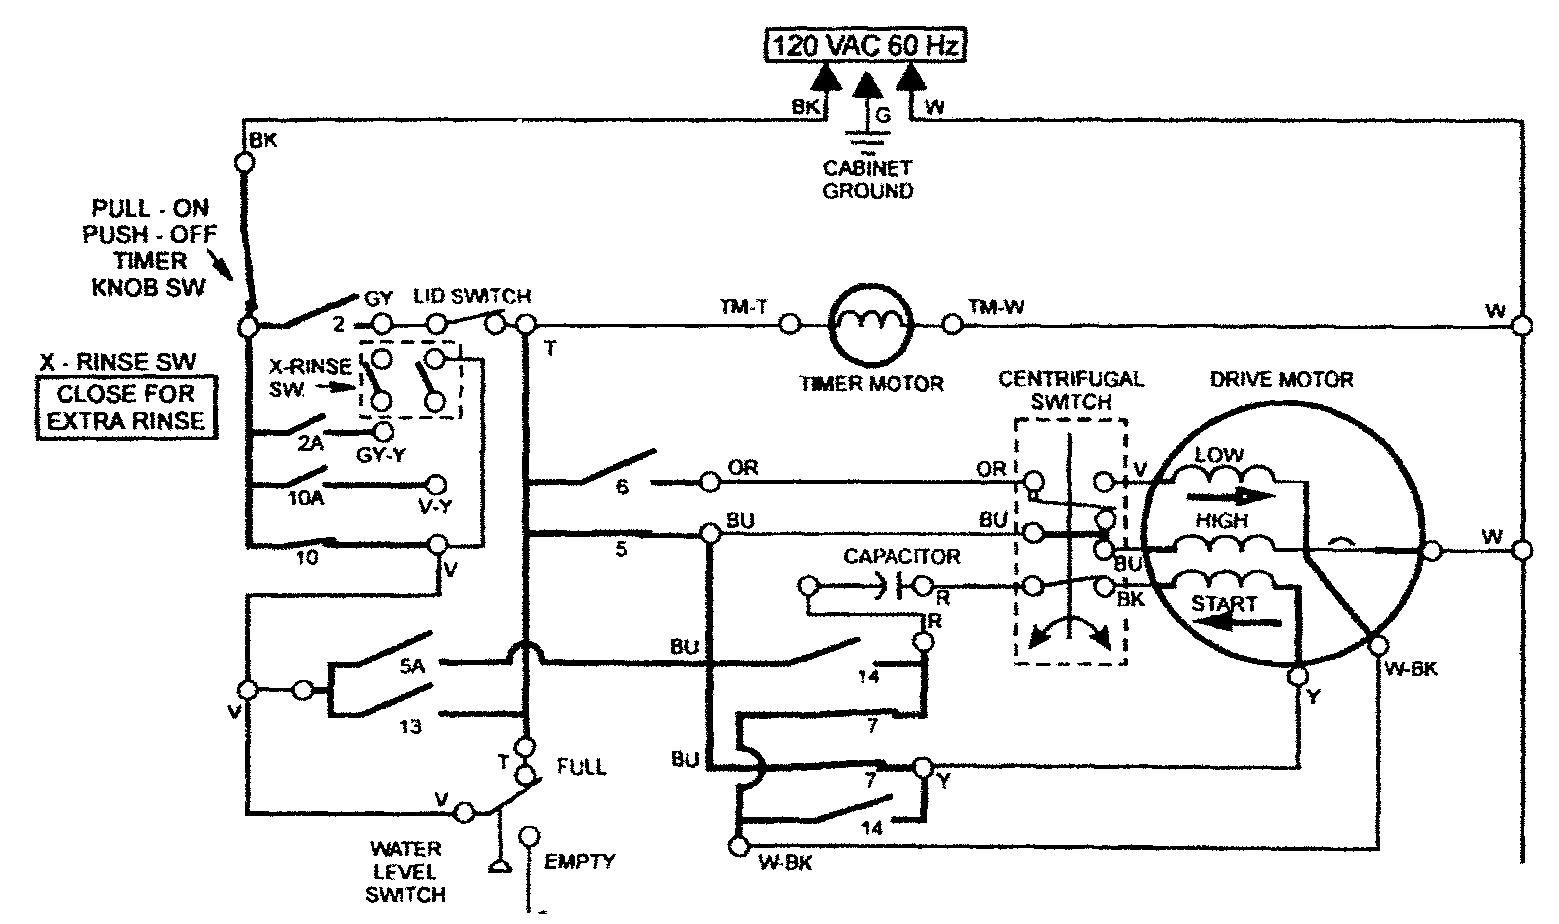 polaris 120 engine diagram get free image about wiring with Washer Motor Wiring Diagrams on Polaris 120 Parts Diagram in addition Yamaha Throttle Control Trim Switch Diagram as well Washer Motor Wiring Diagrams besides Cat Engine Schematic Diagram besides Lawn Mower Parts Lawn Tractor Parts John Deere Us.